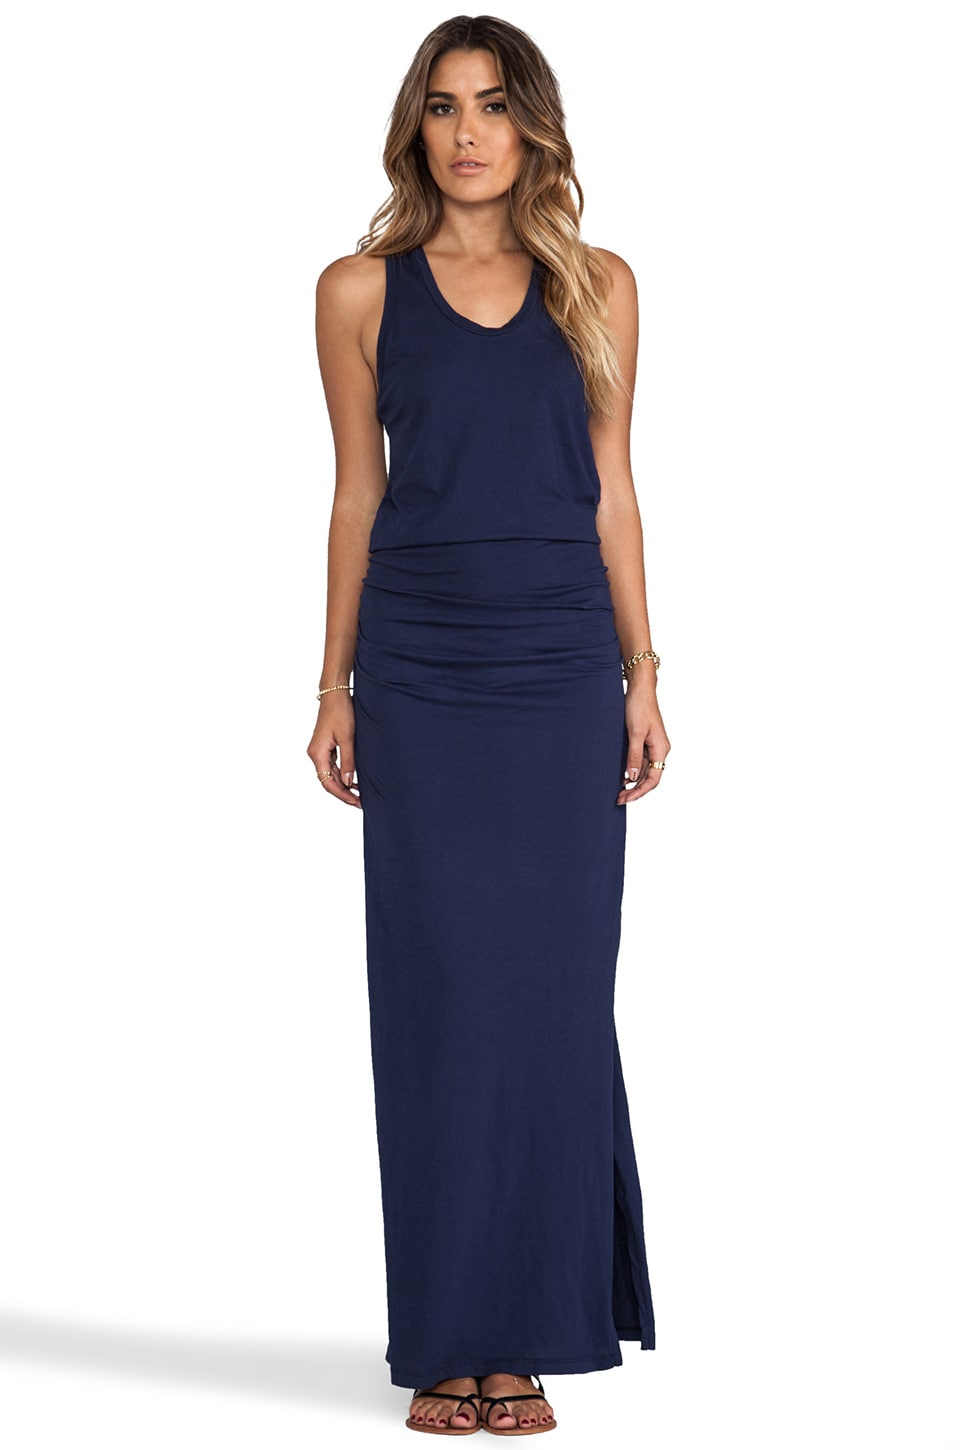 Bobi Supreme Maxi Dress in Marina